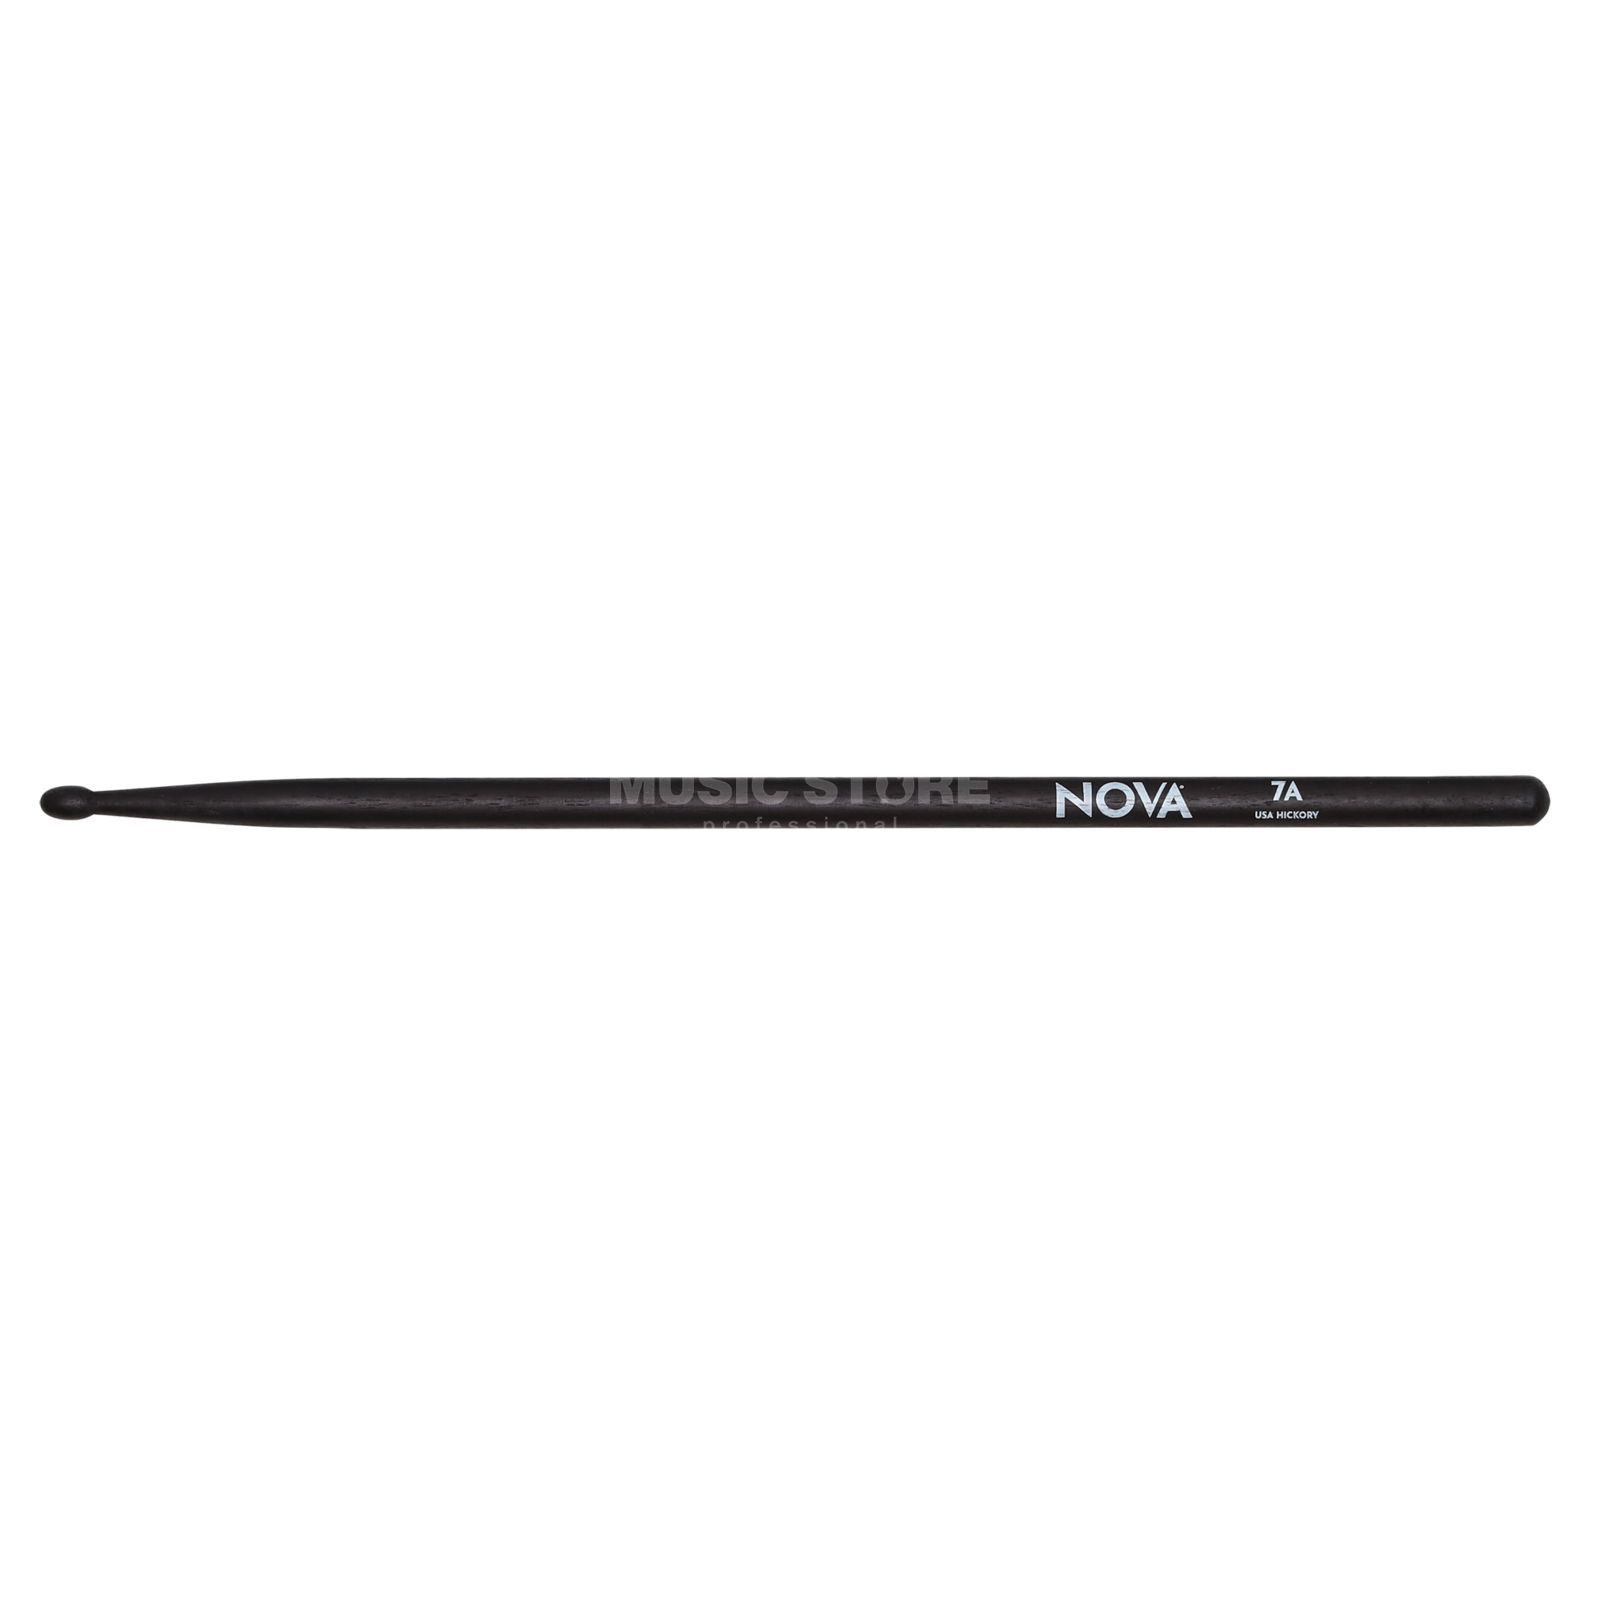 Vic-Firth Nova Drum Sticks 7AB, Wood Tip Produktbillede